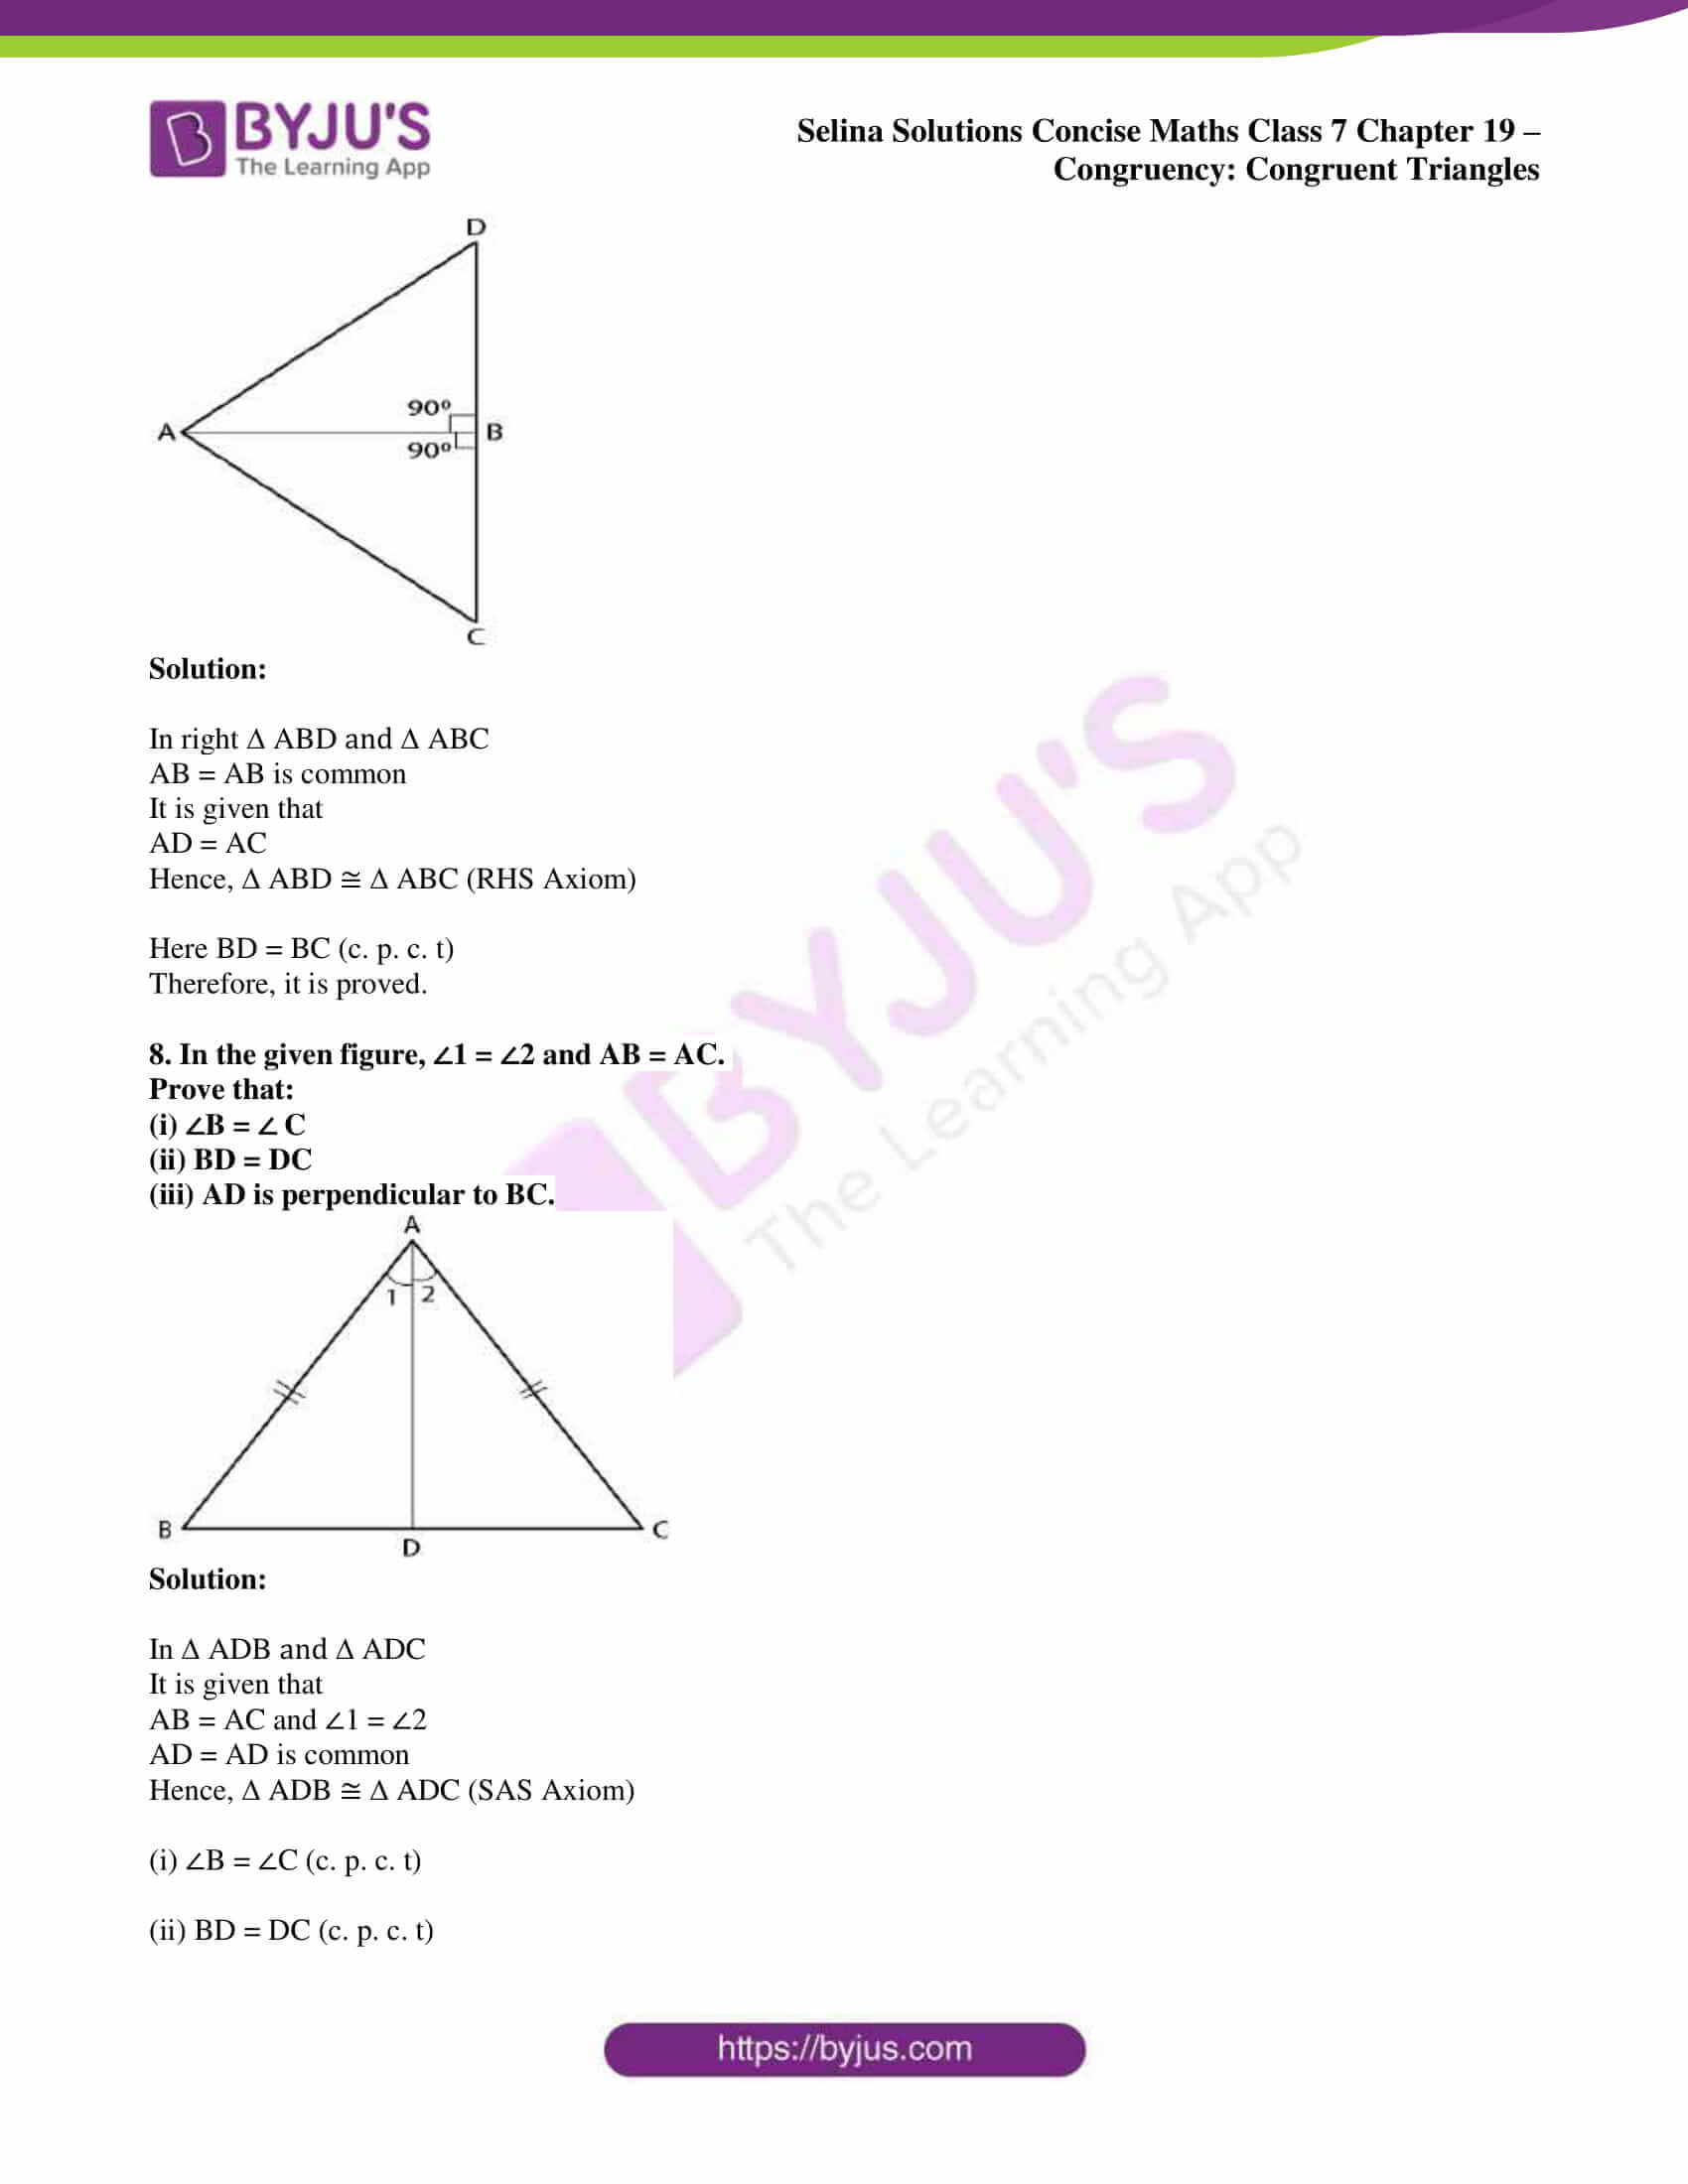 selina sol concise maths class 7 chapter 19 06